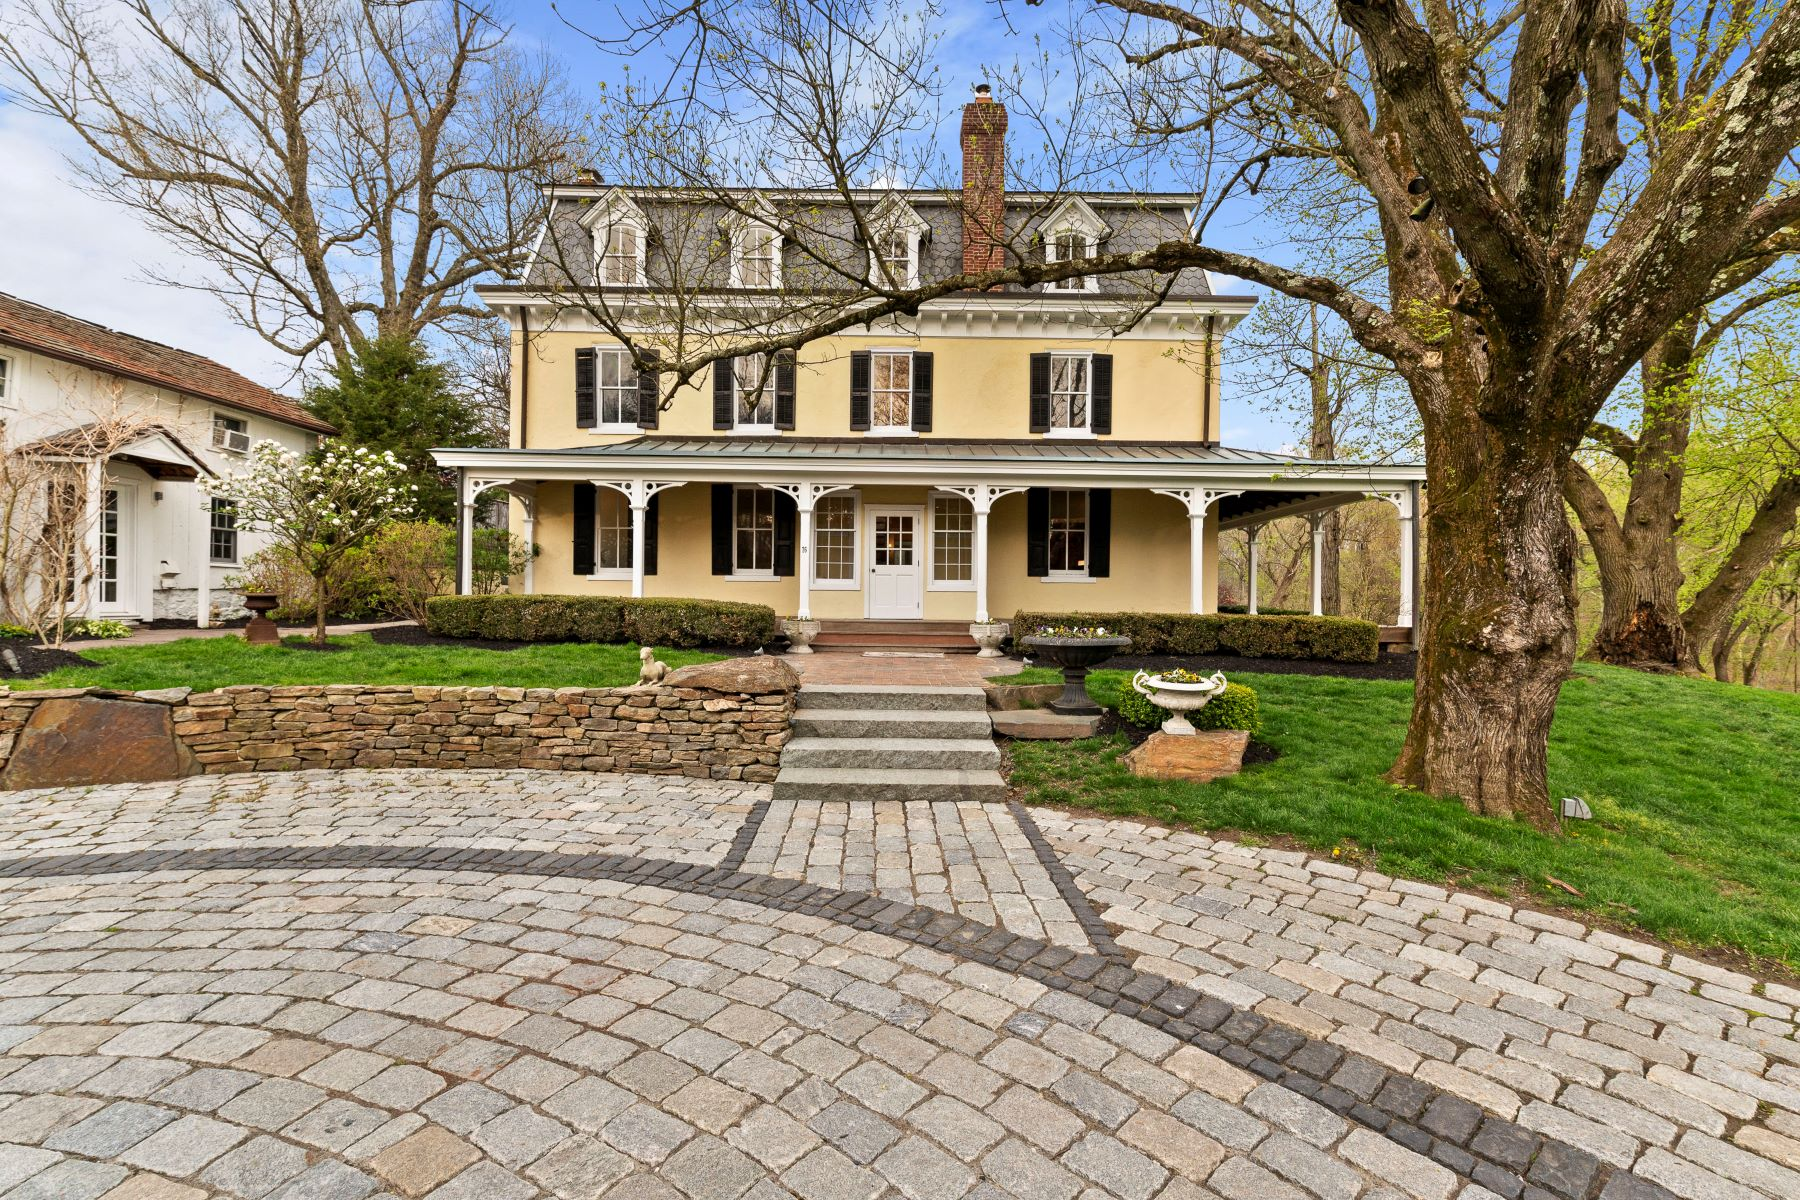 Single Family Homes for Sale at 0 Rocky Hill Rd., Chadds Ford, PA 19317 Chadds Ford, Pennsylvania 19317 United States